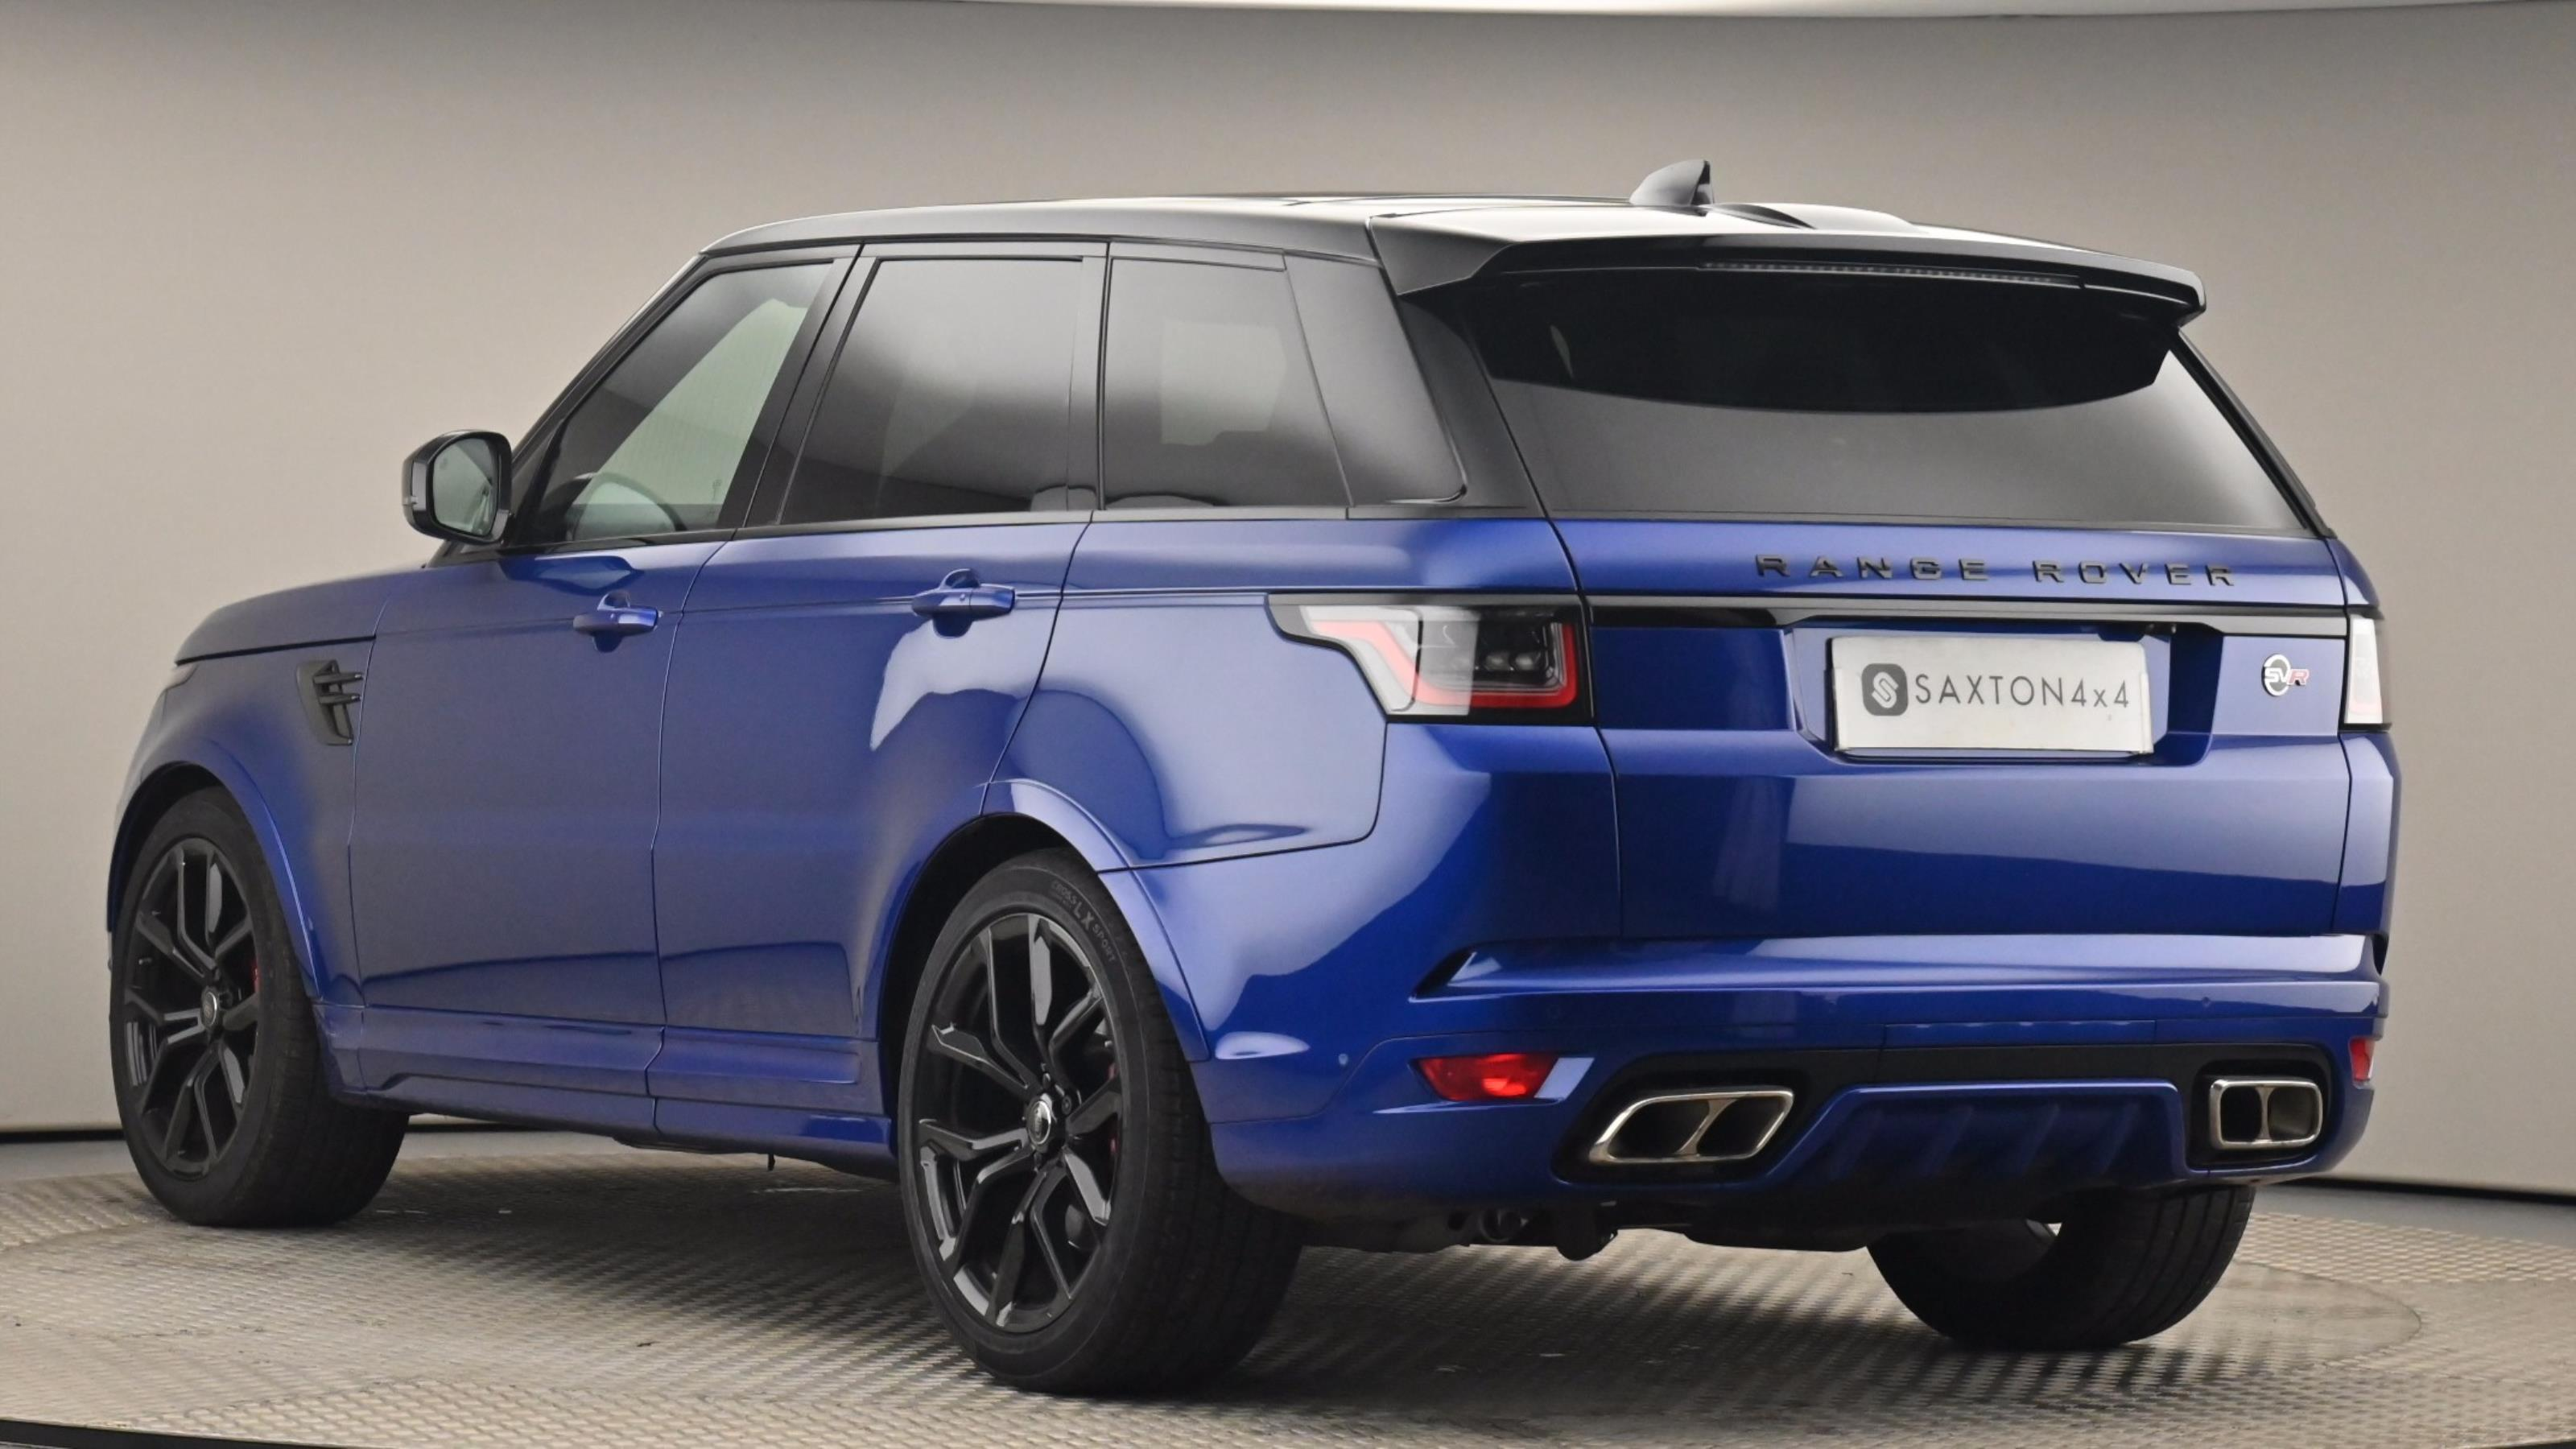 Used 2018 Land Rover Range Rover Sport  SVR ~ at Saxton4x4